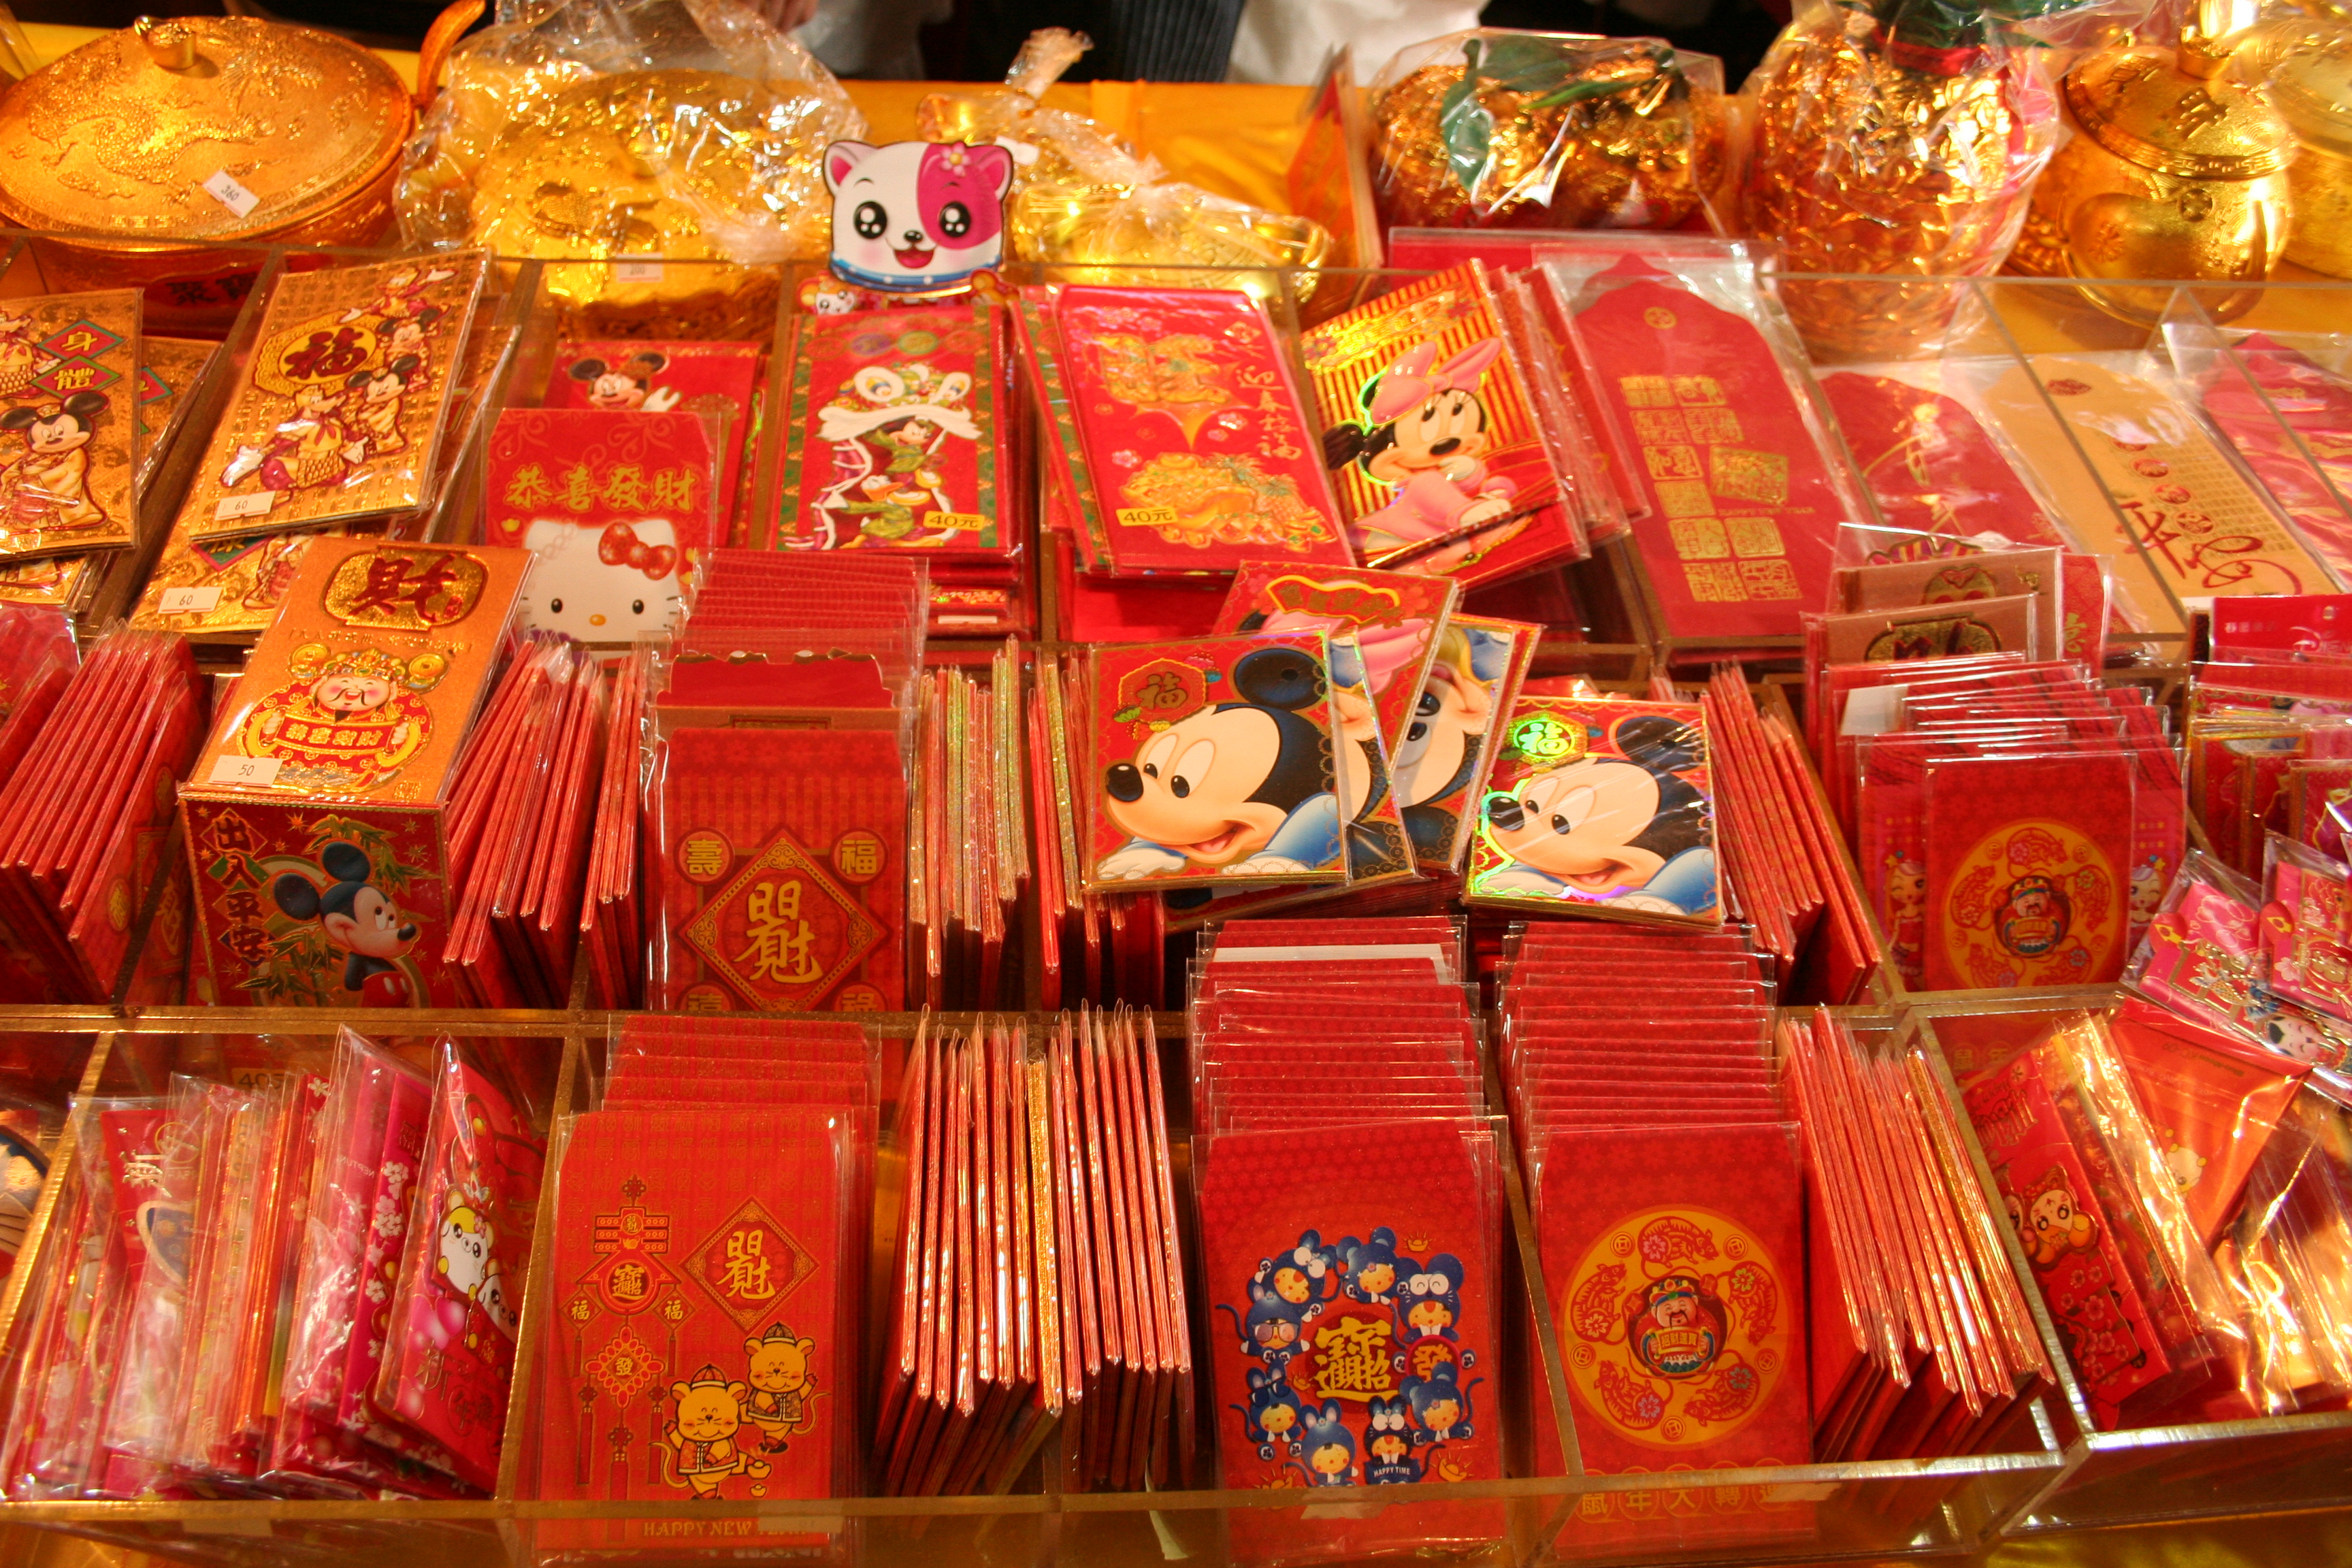 Hongbao for sale in Dihua Market in Taipei on Taiwan, prior to the start of the Year of the Rat. Photo taken on January 27, 2008.